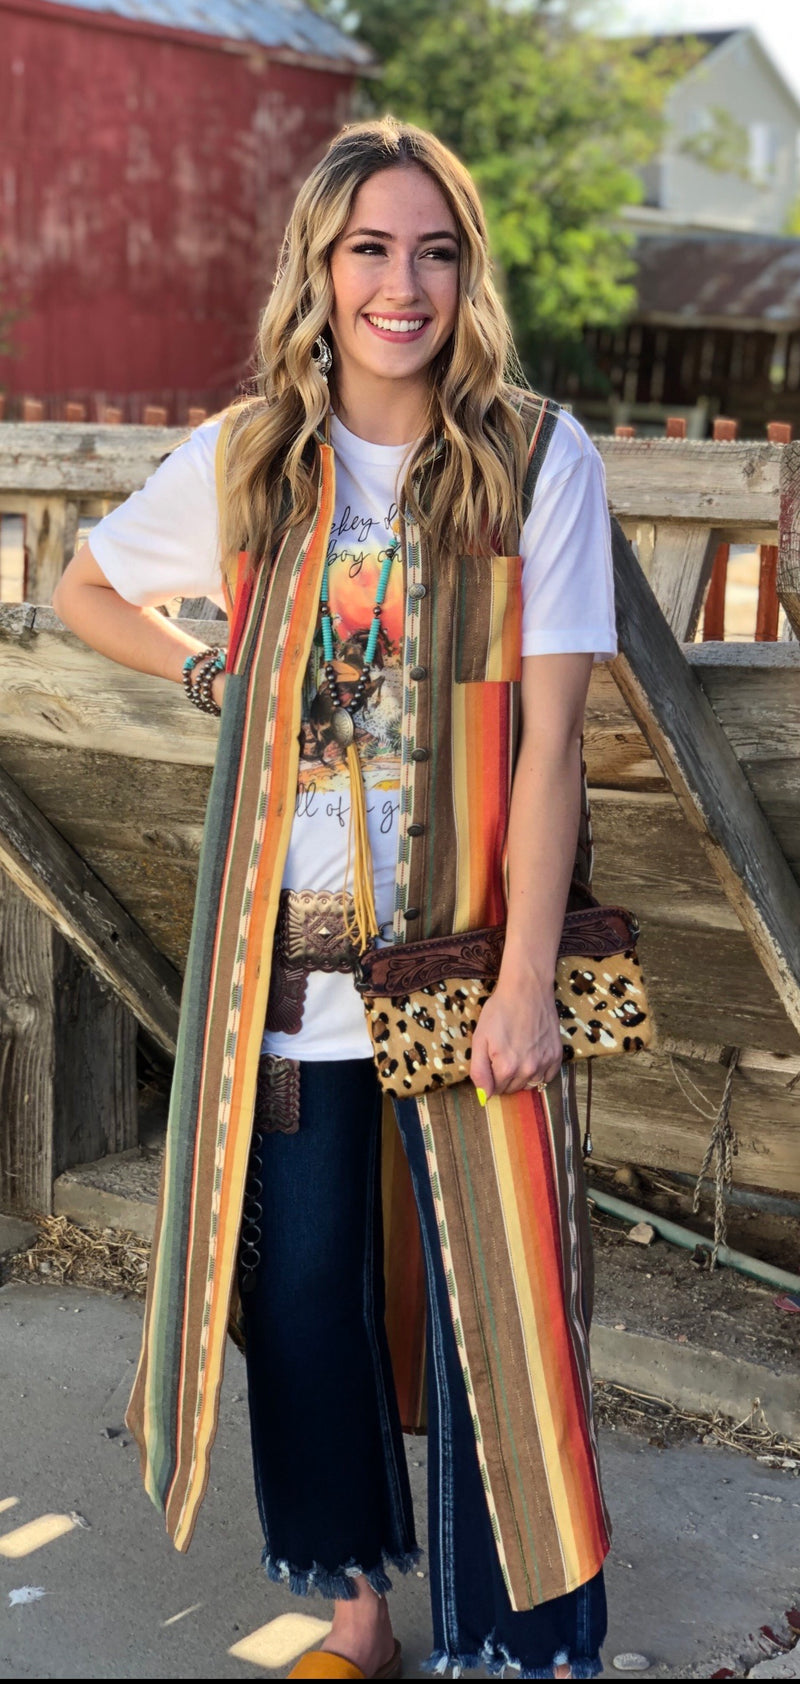 The San Jacinto Serape Duster Vest